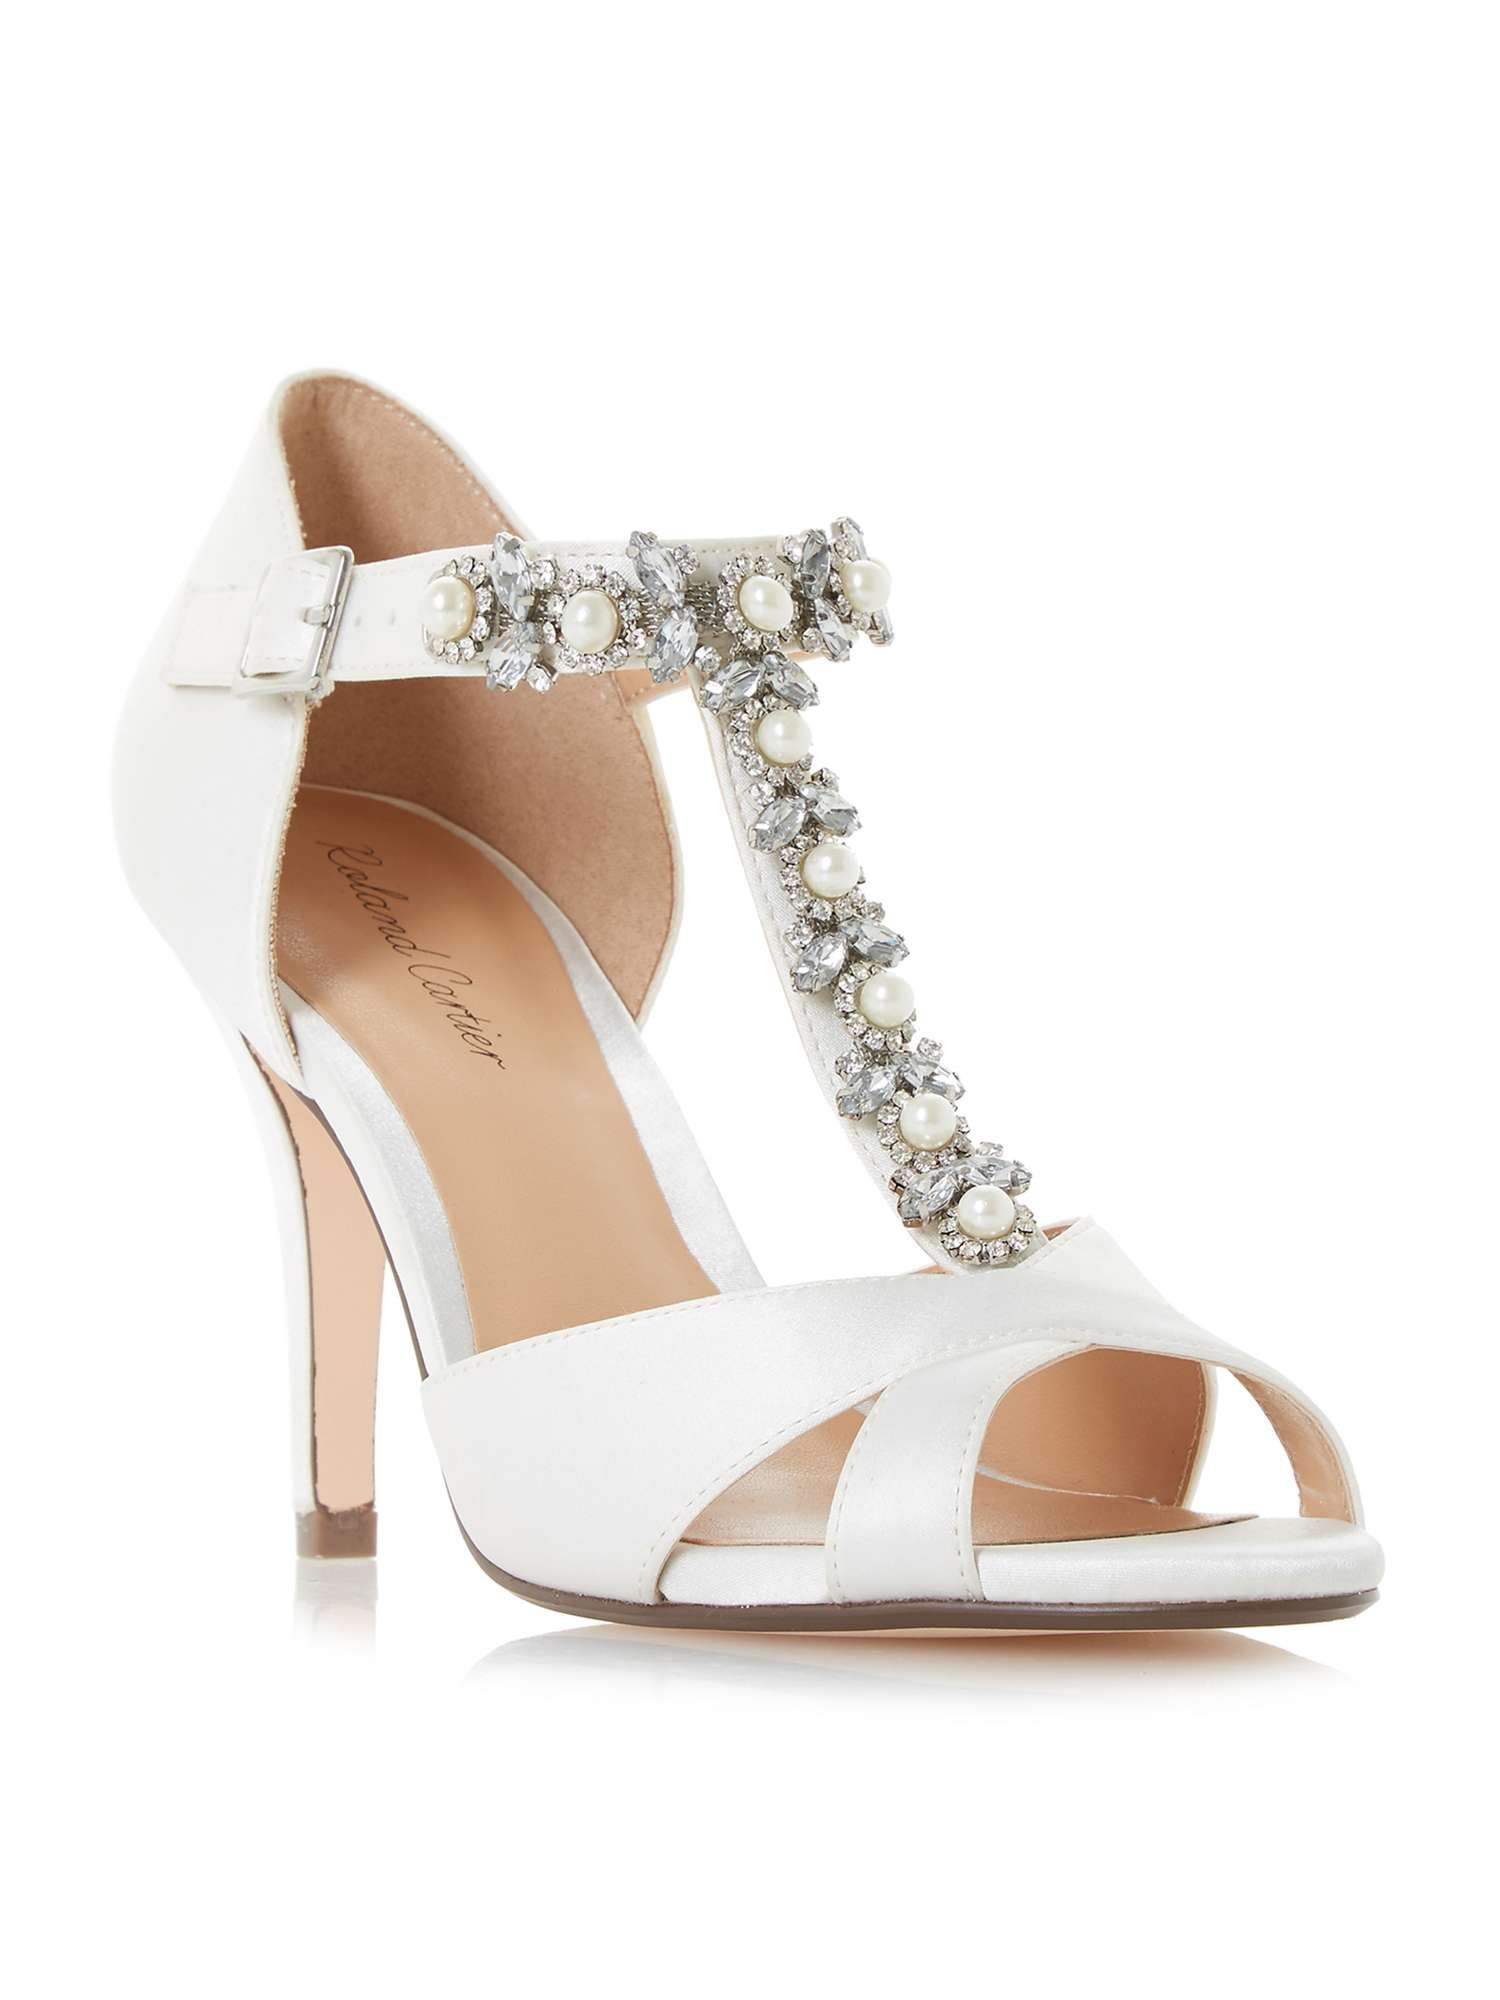 0761b9ba680 Roland Cartier Maddalyn Embellished T-bar Court Shoes - House of ...